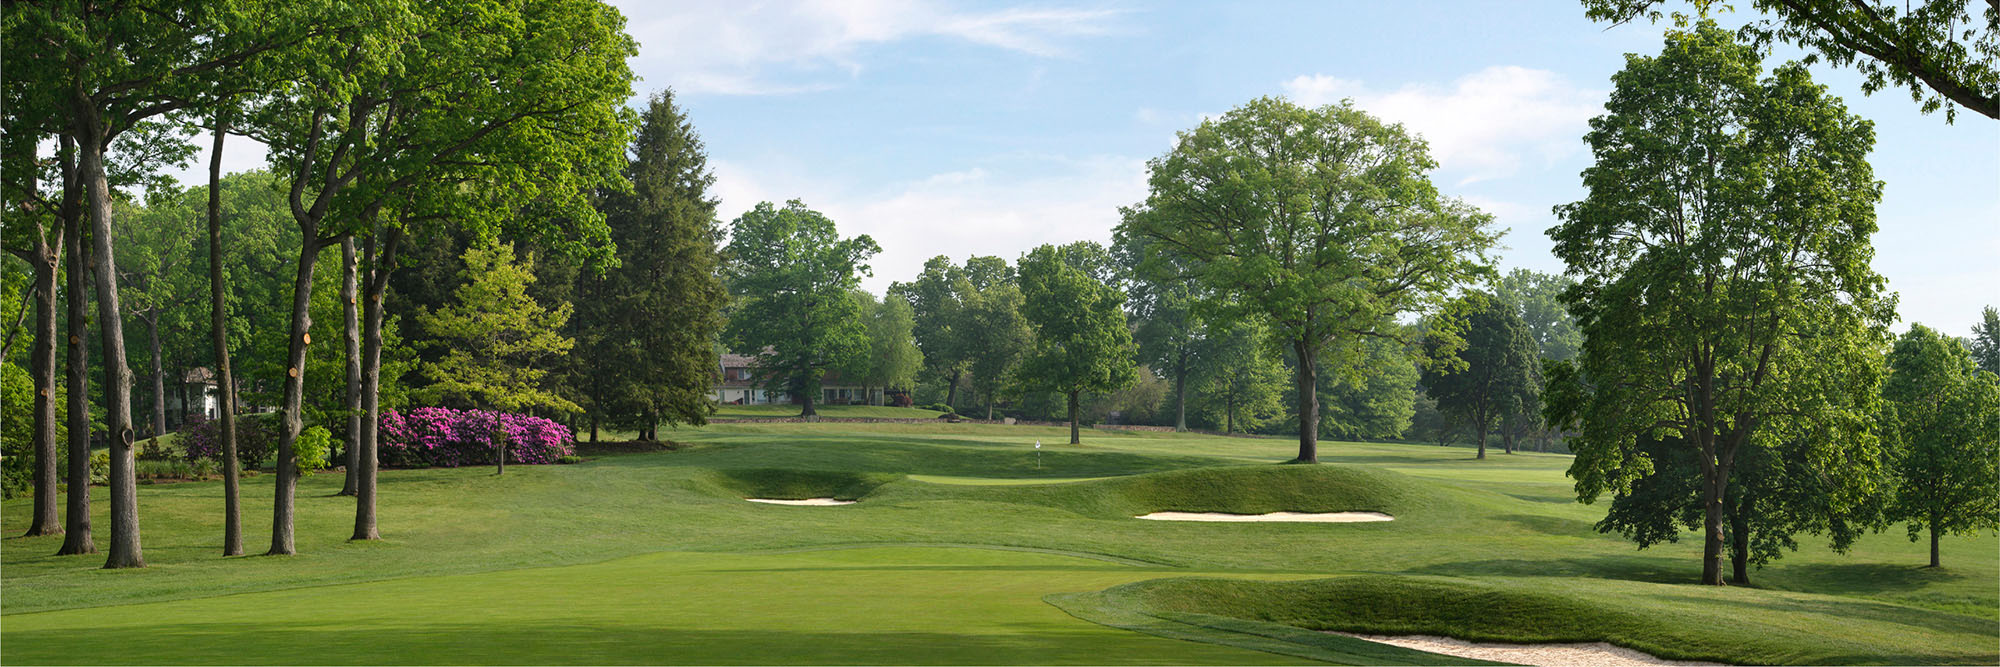 Golf Course Image - Pittsburgh Field Club No. 10